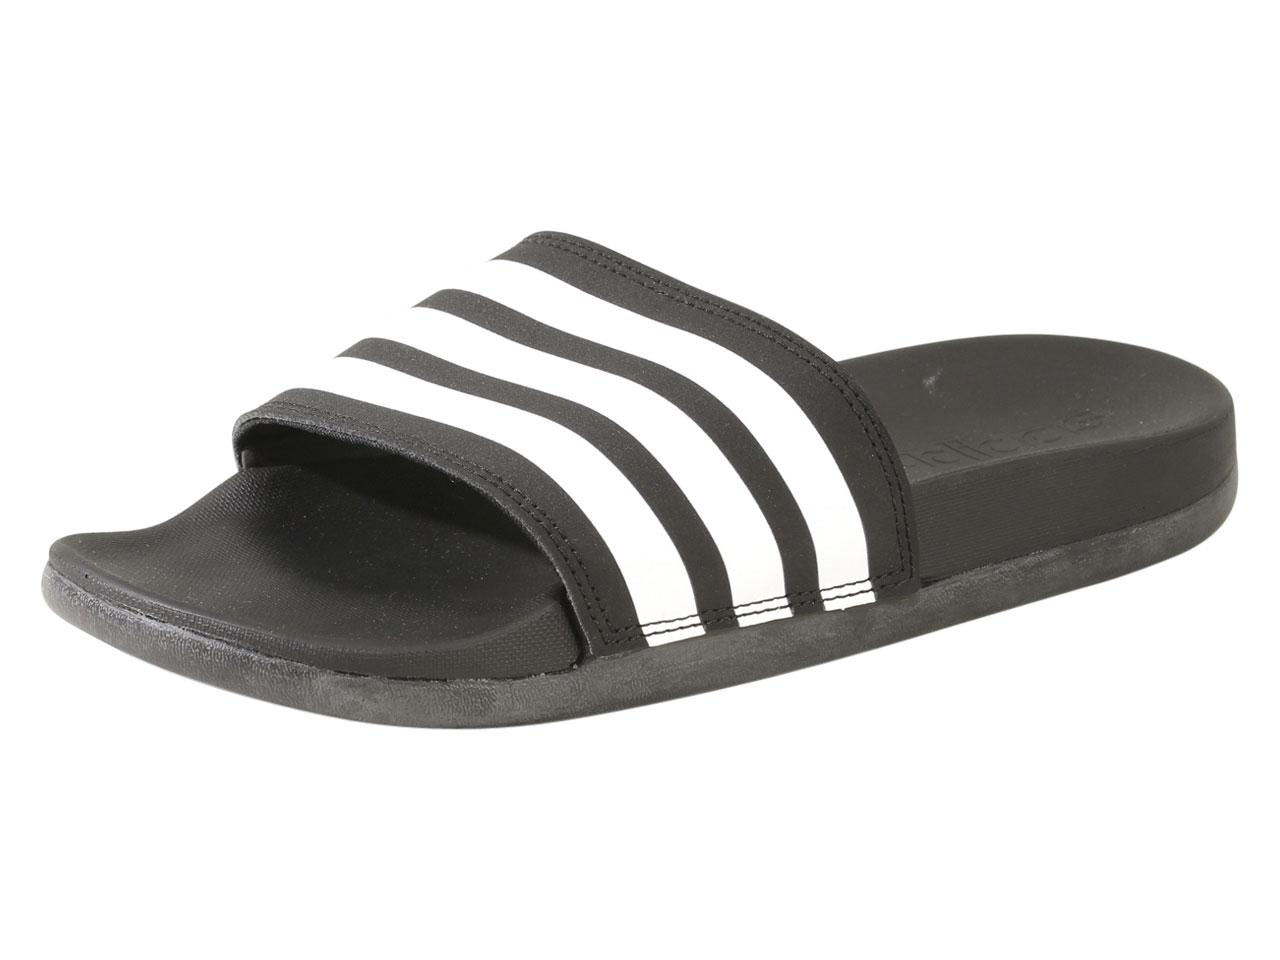 best website 3bf45 0c947 Adidas Men s Adilette Comfort Cloudfoam Plus Slides Sandals Shoes by Adidas.  1234567